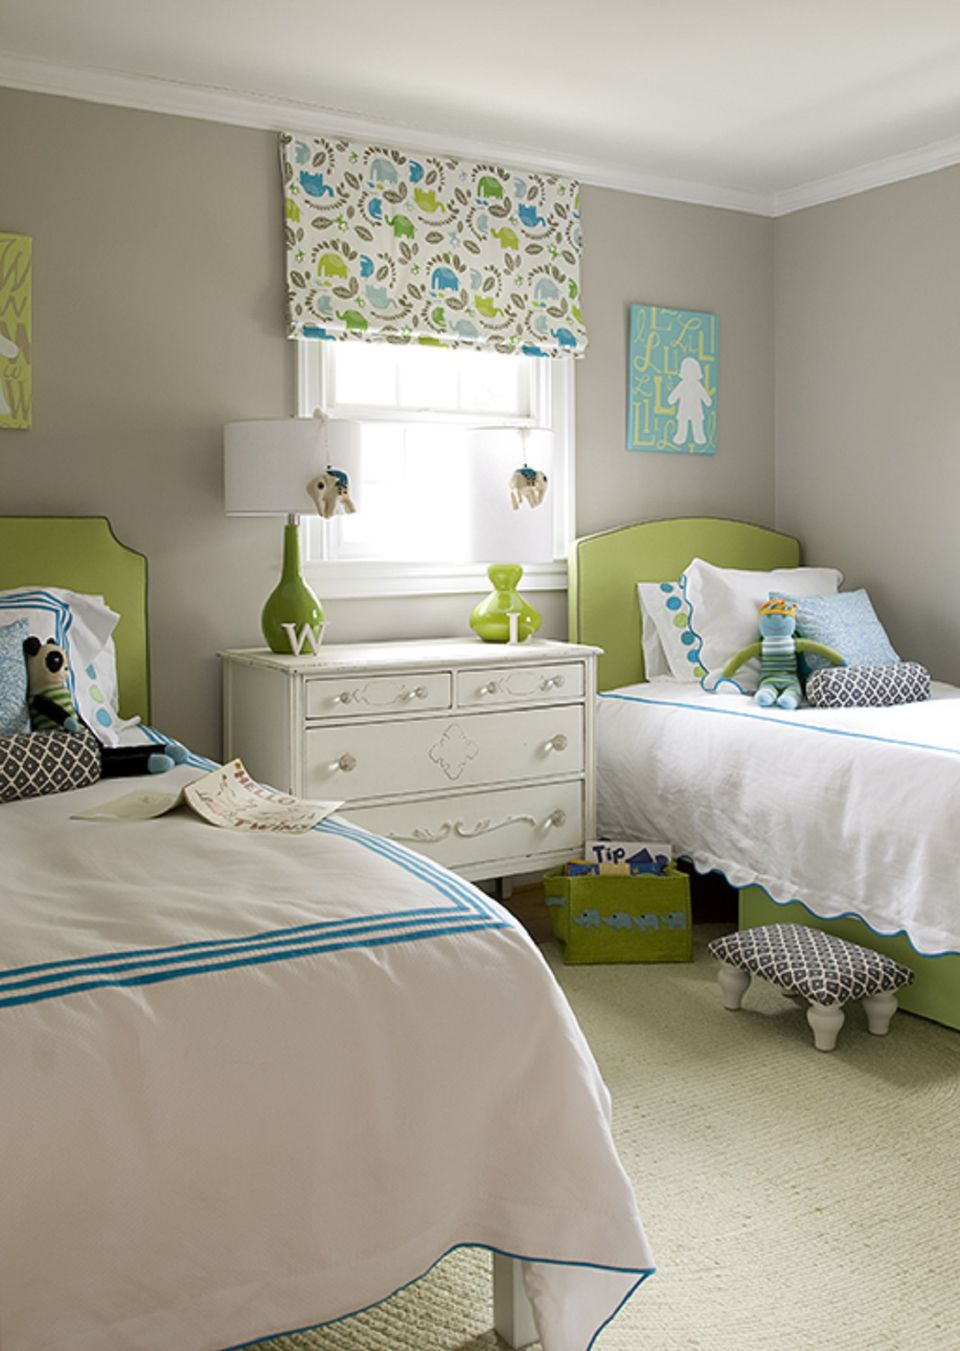 Ideas for decorating a little girl 39 s bedroom for Unisex bedroom inspiration